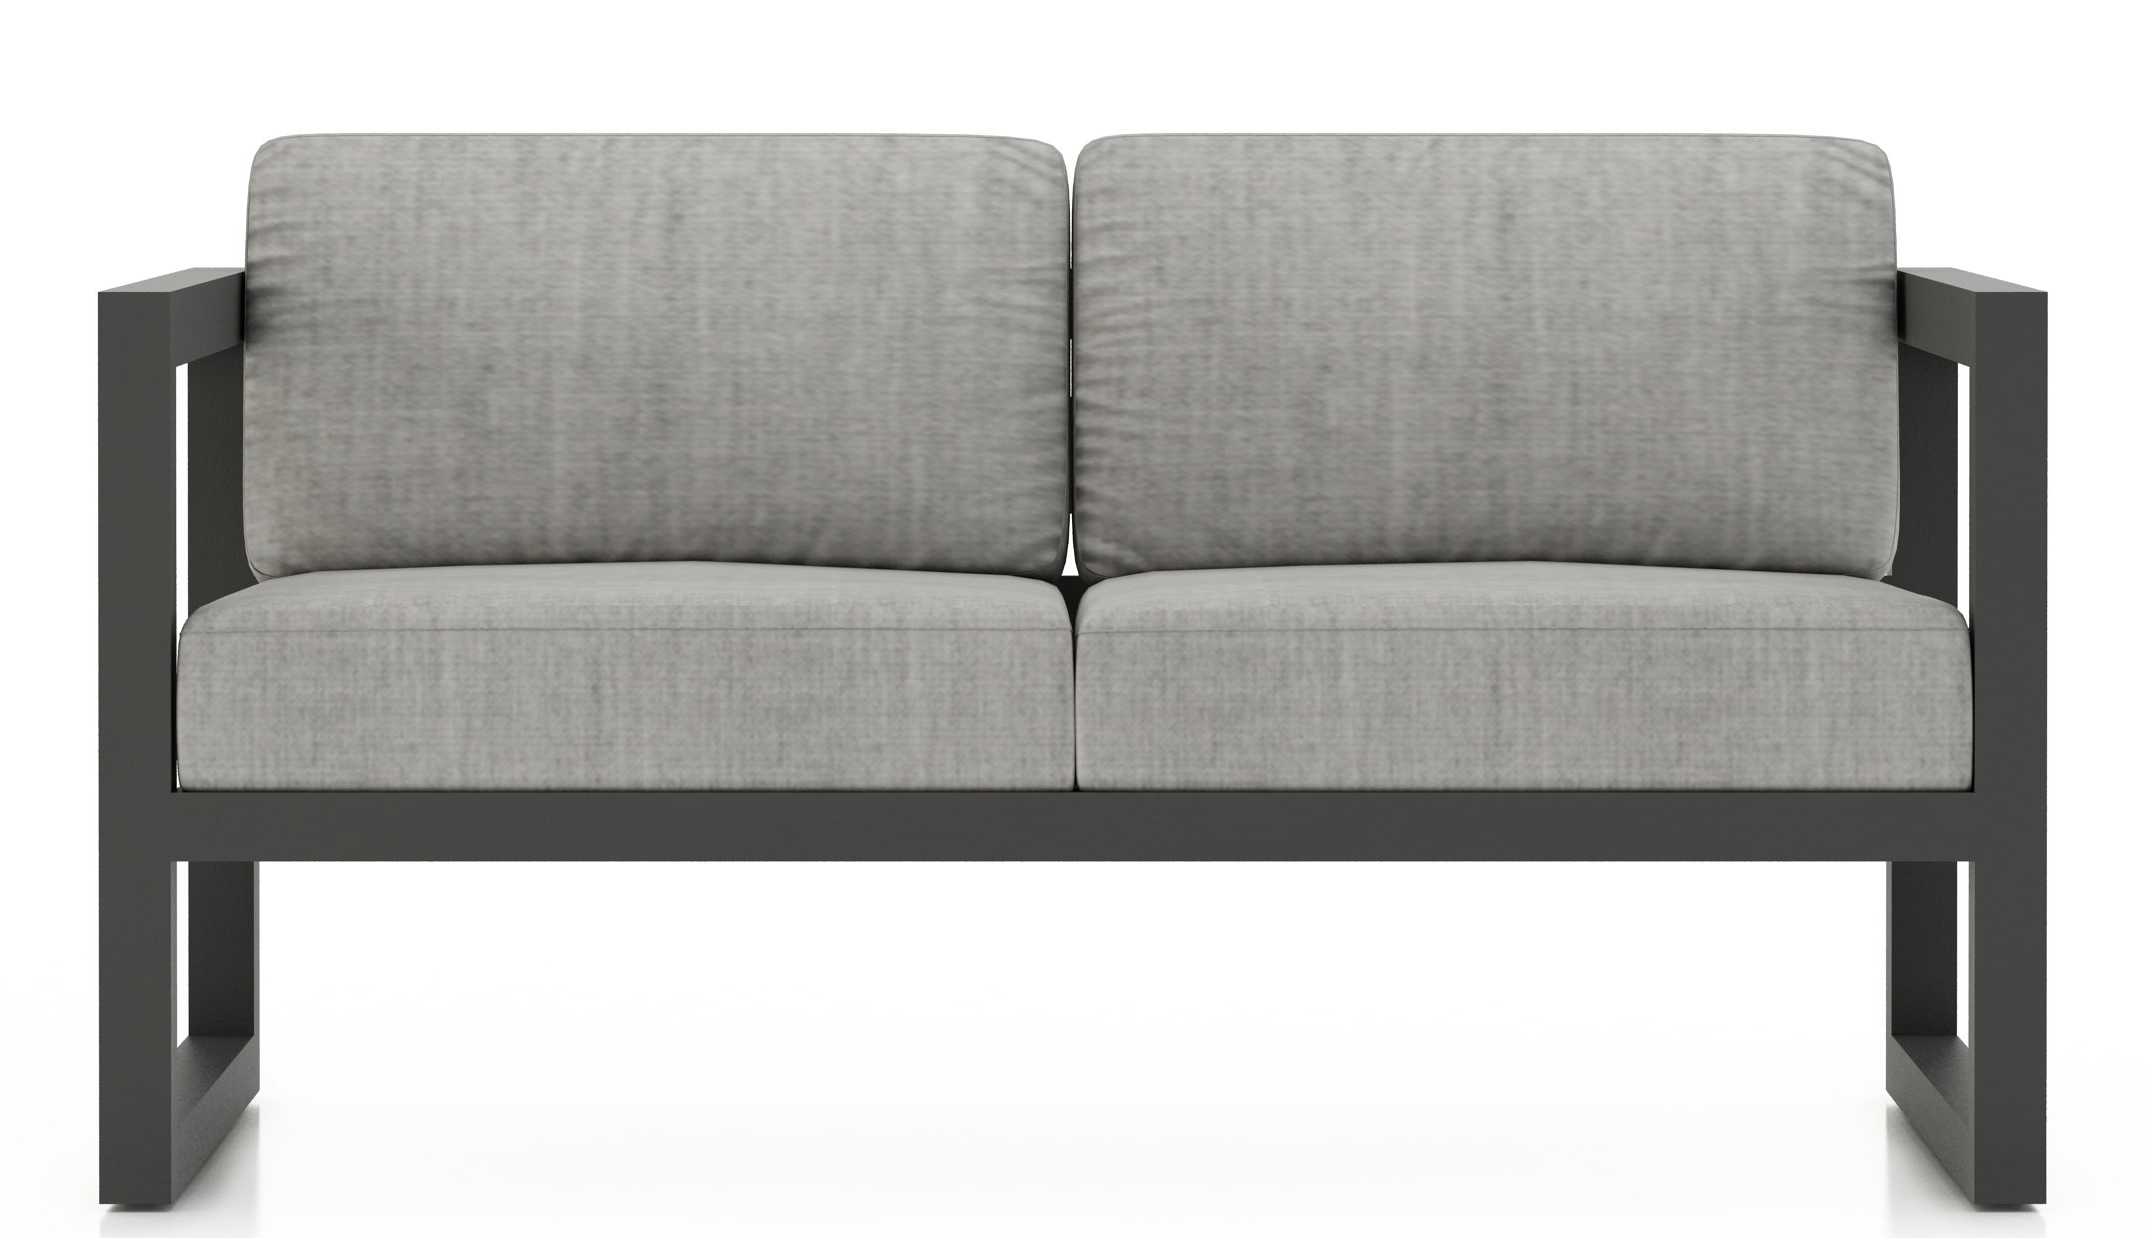 Well Known Bristol Loveseats With Cushions Intended For Remi Loveseat With Sunbrella Cushions (View 19 of 20)